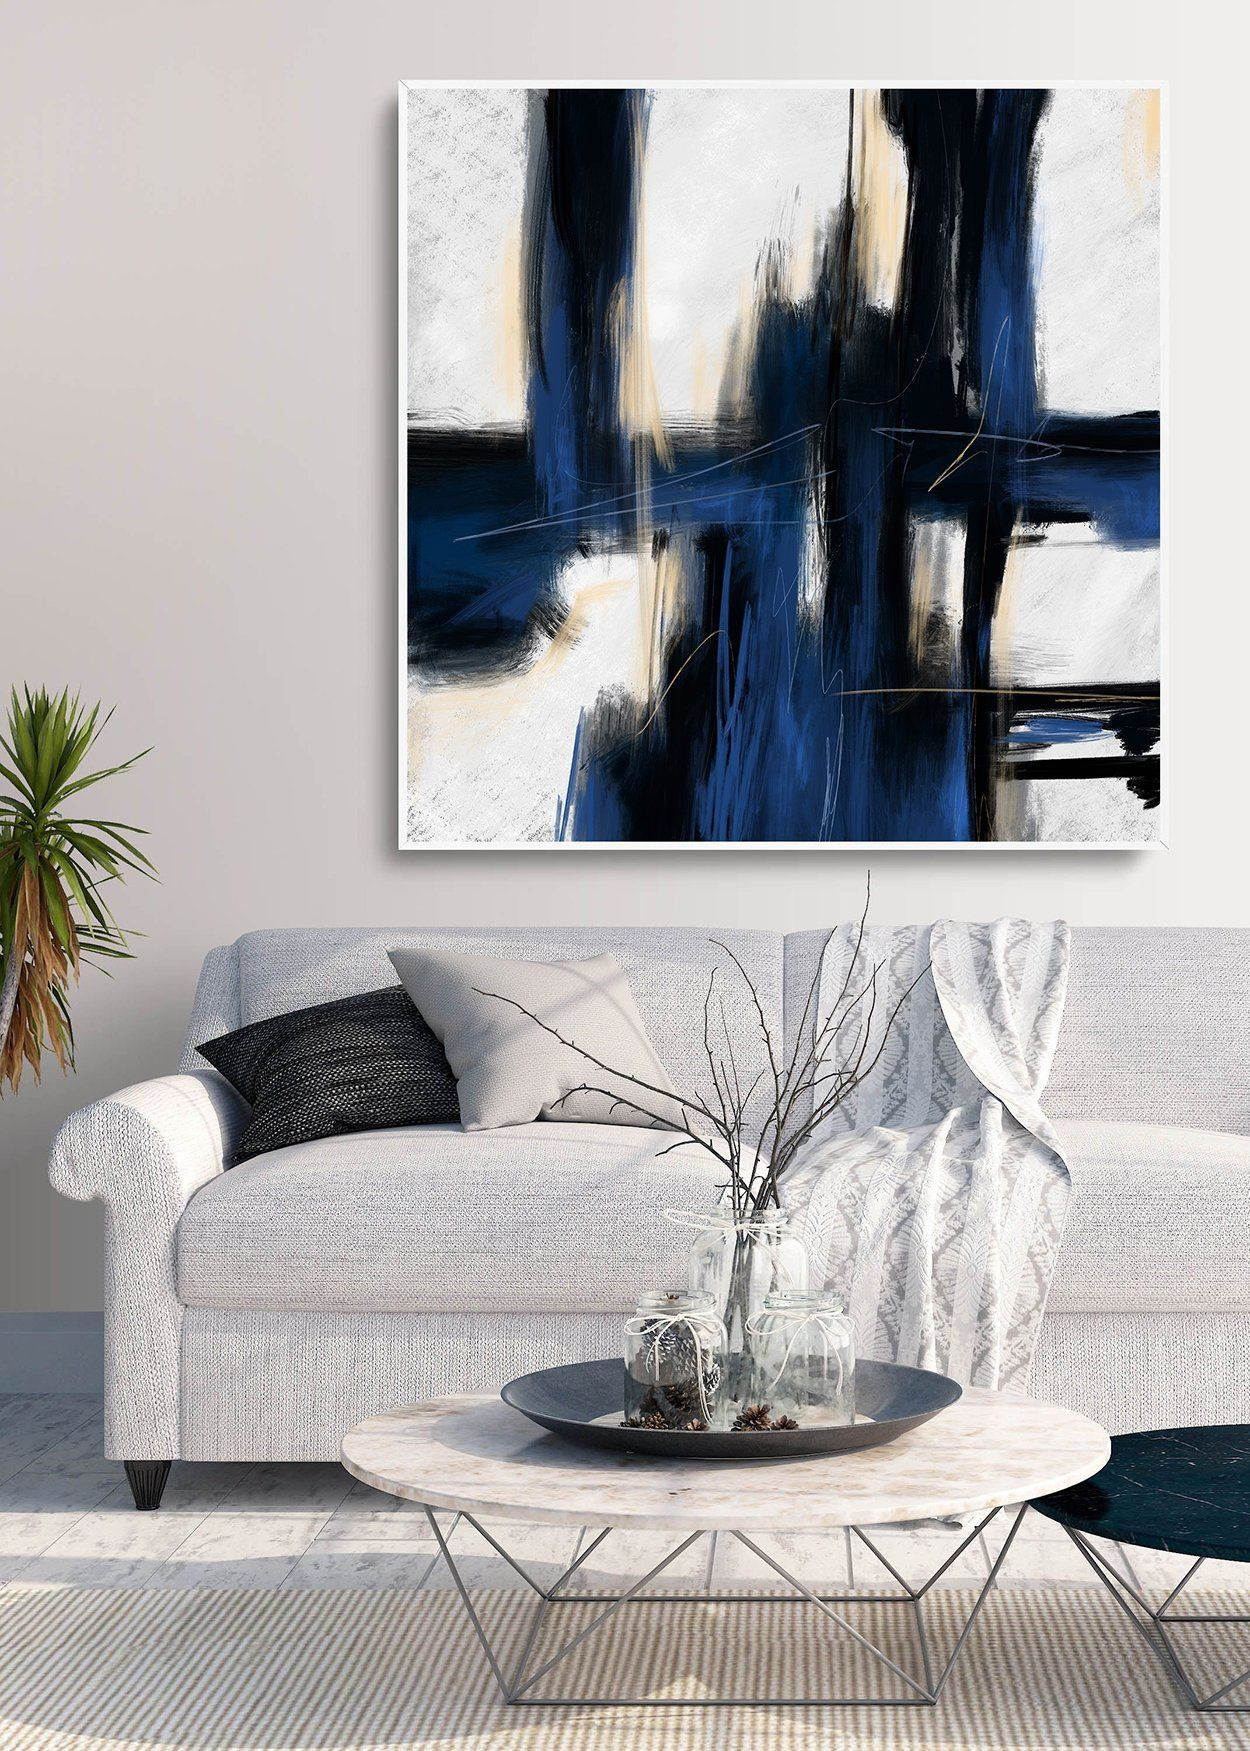 Abstract Paintinglarge Wall Artpaintings On Canvasextra Etsy